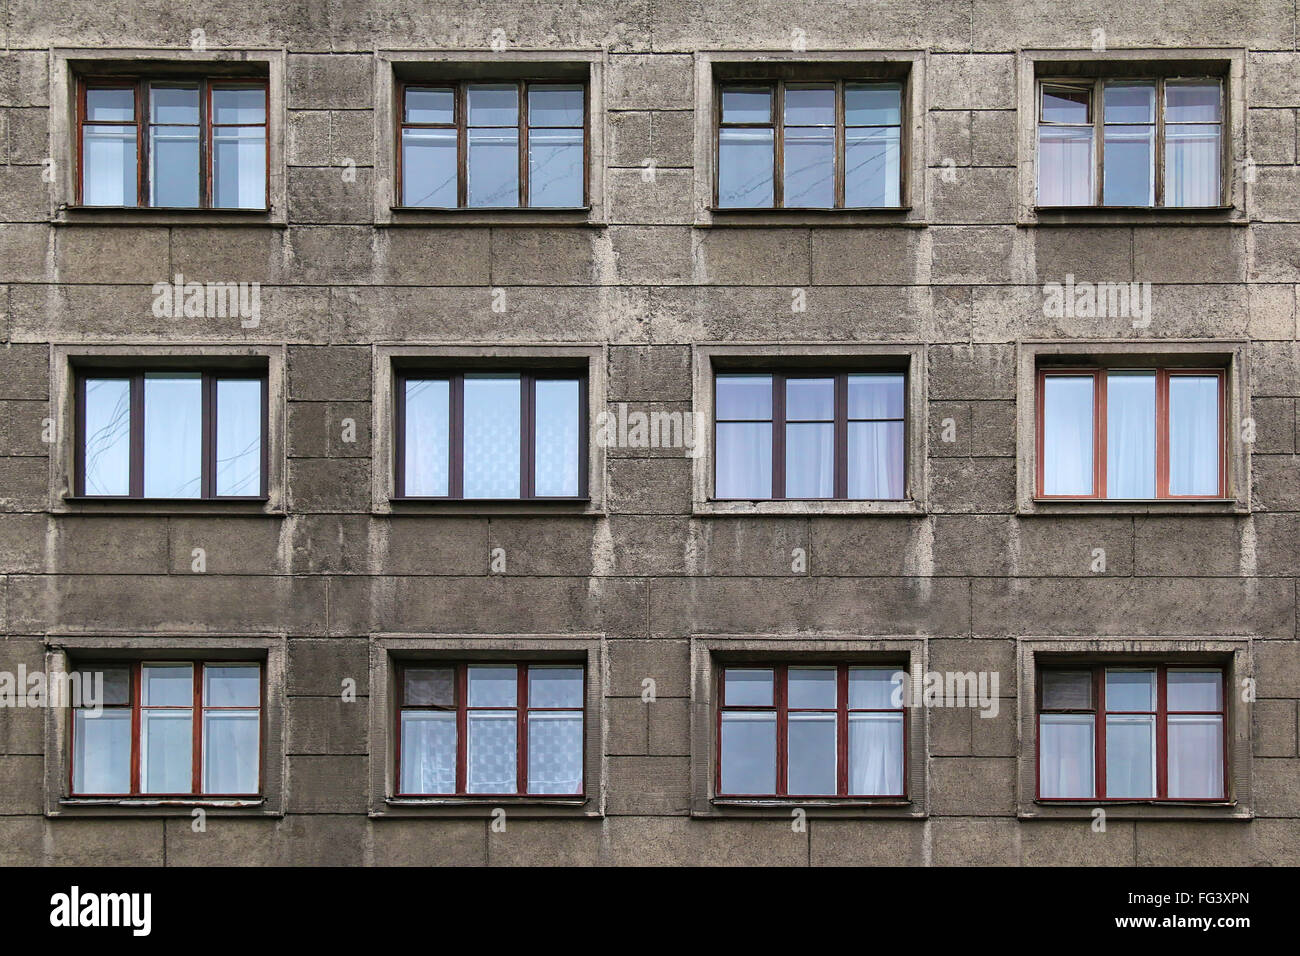 Apartment Building Front delighful apartment building front of 401 httpwwwnps o throughout